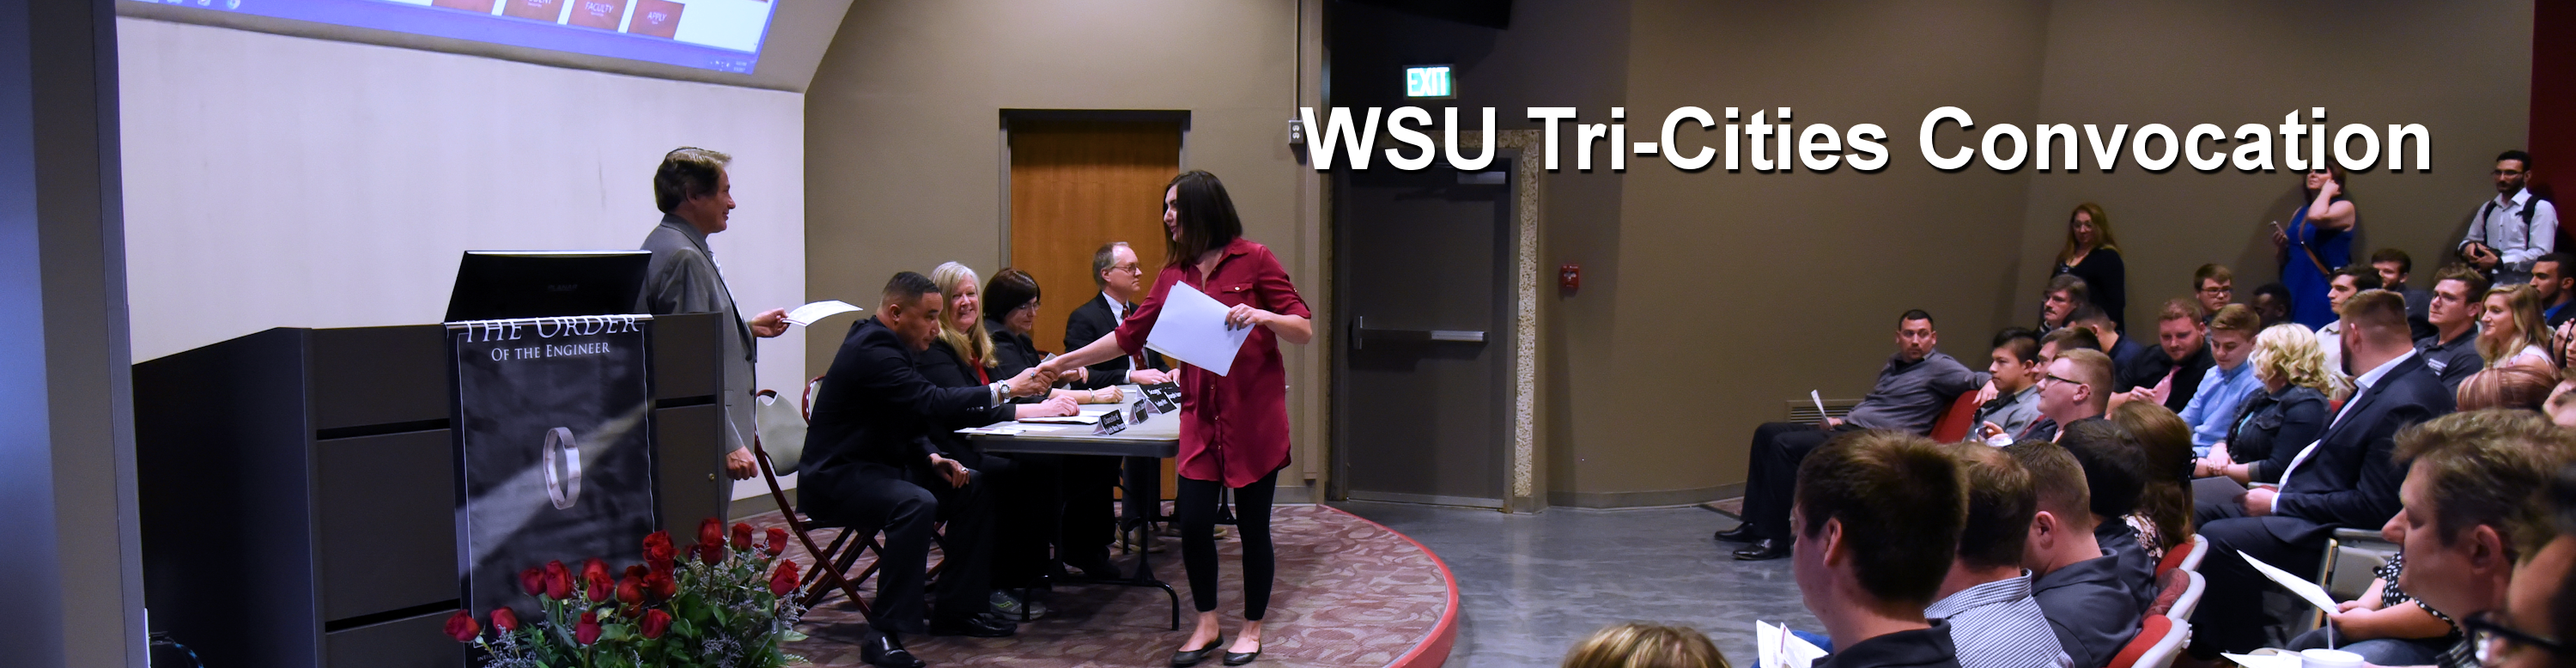 Graduating female student receiving a certificate from the Chancellor during the Order of the Engineer Induction Ceremony at the annual WSU Tri-Cities Convocation ceremony